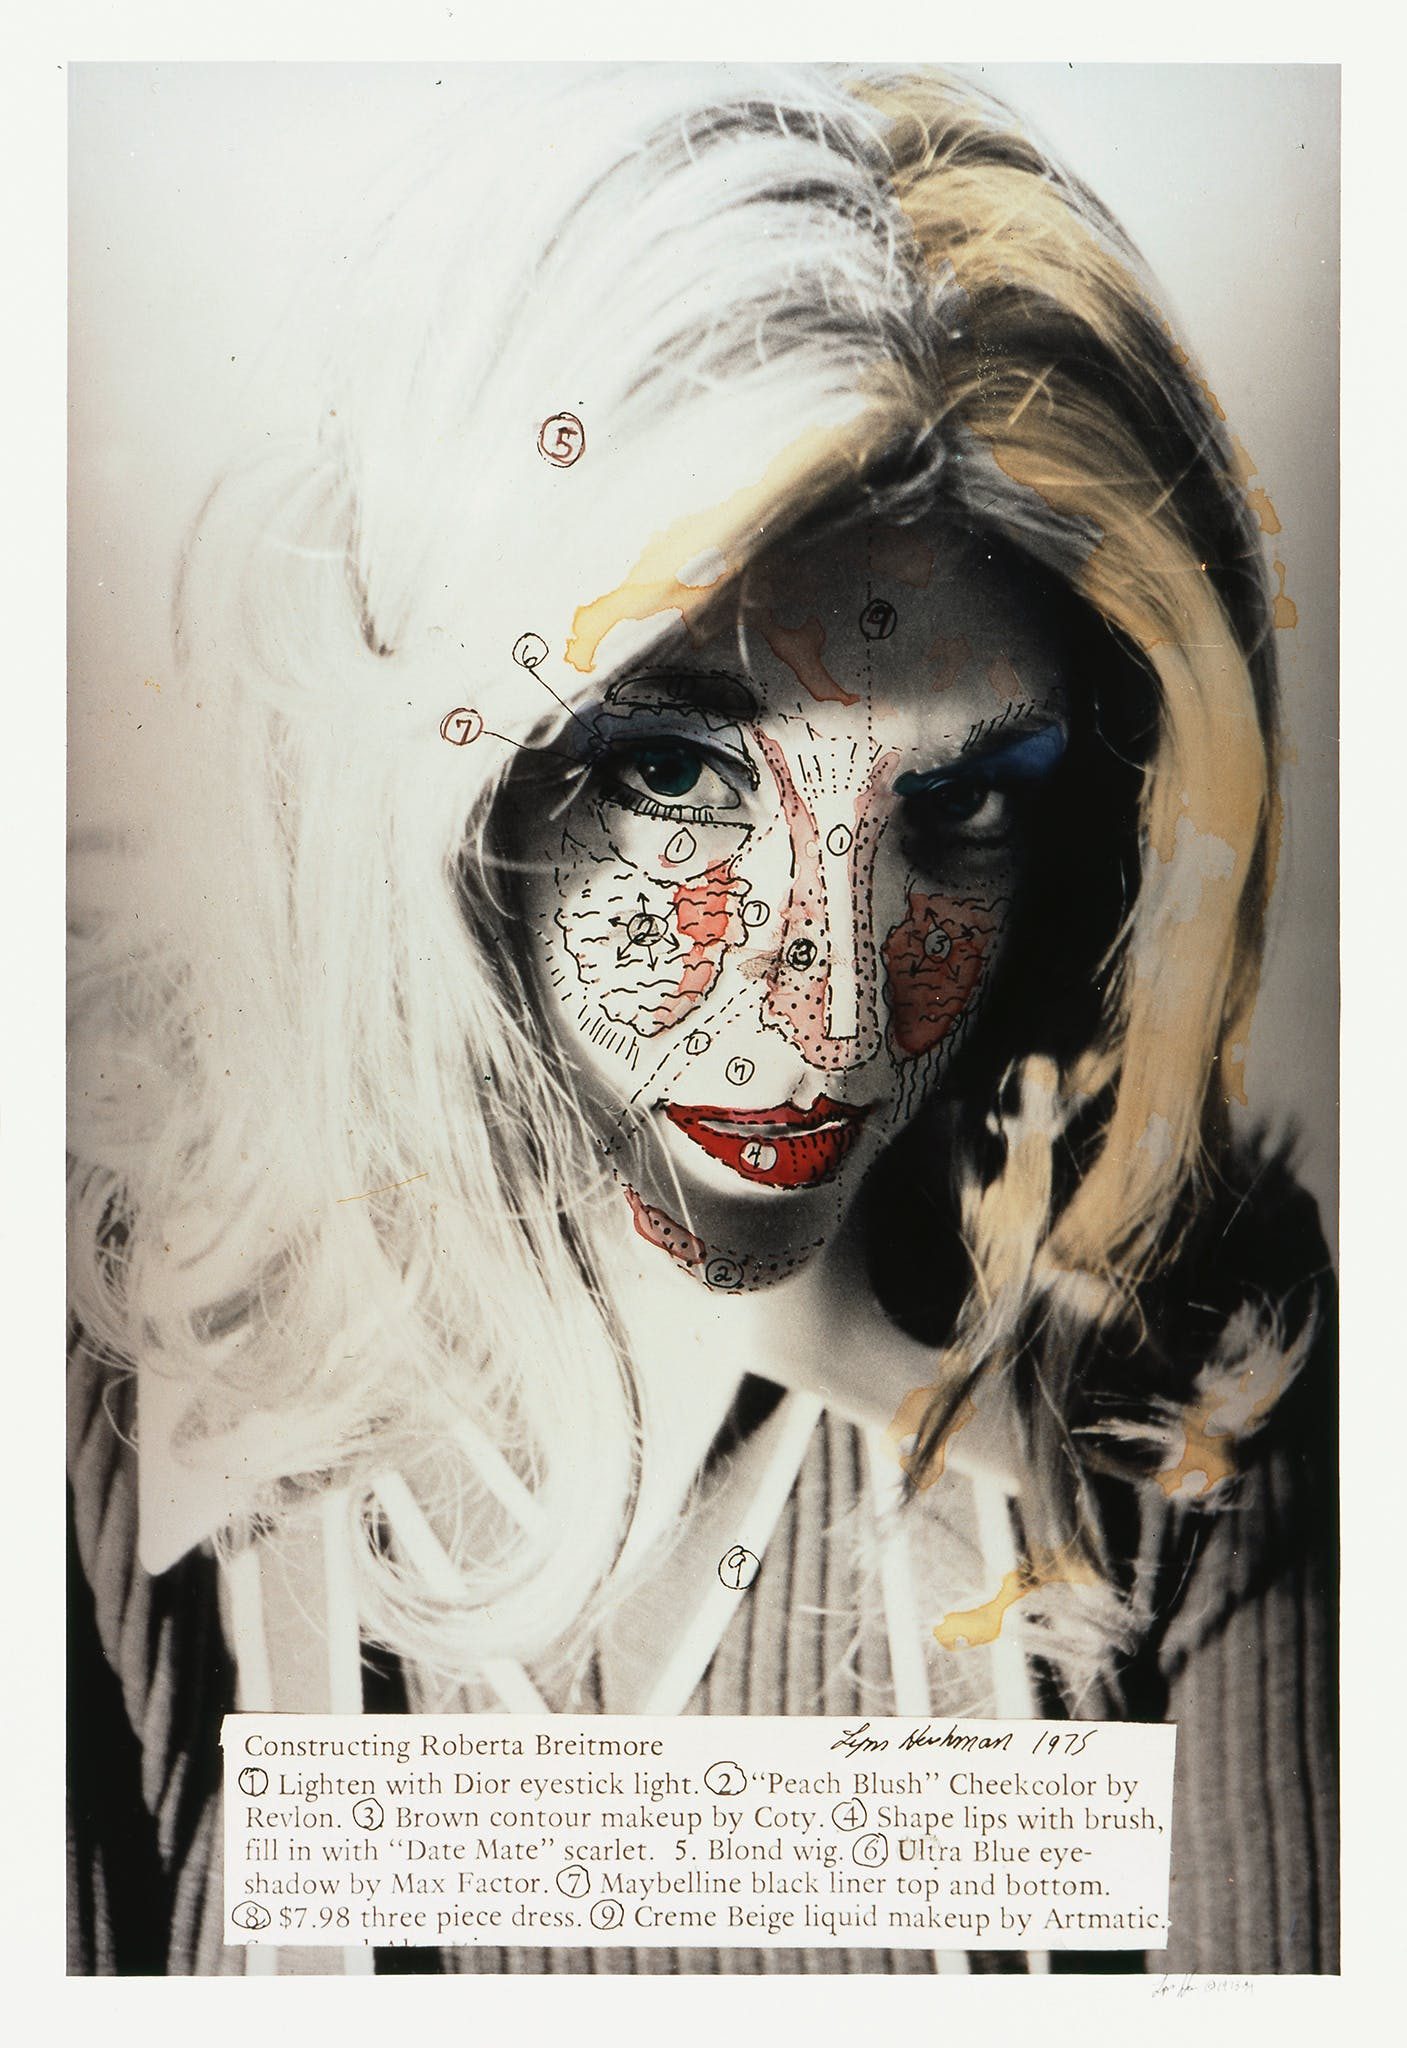 Shot of woman's face with internal body parts drawn on her face. Text inlay lists the makeup name and manufacturer used in each area.